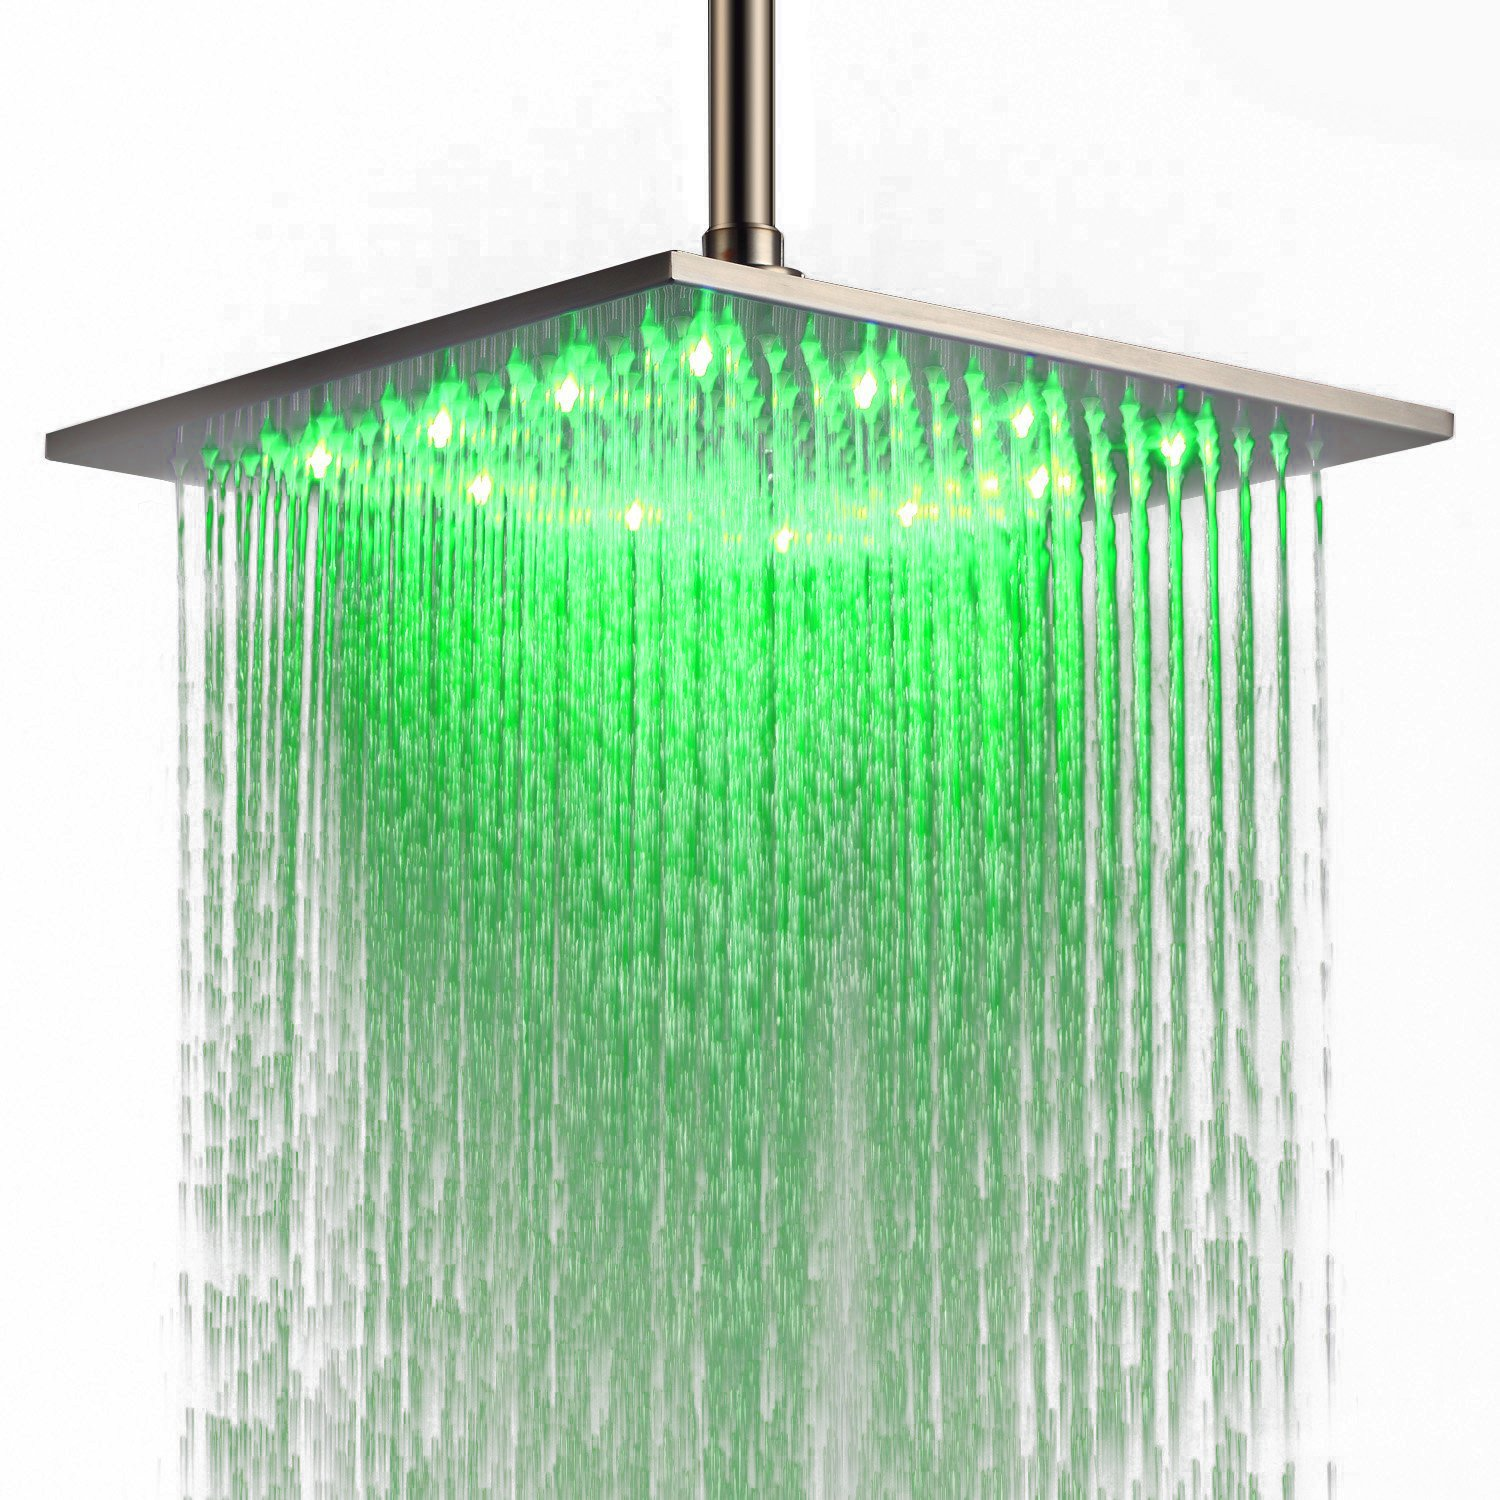 JinYuZe Luxury 12'' Large Square Stainless Steel LED Rainfall Shower Head for Bathrooms